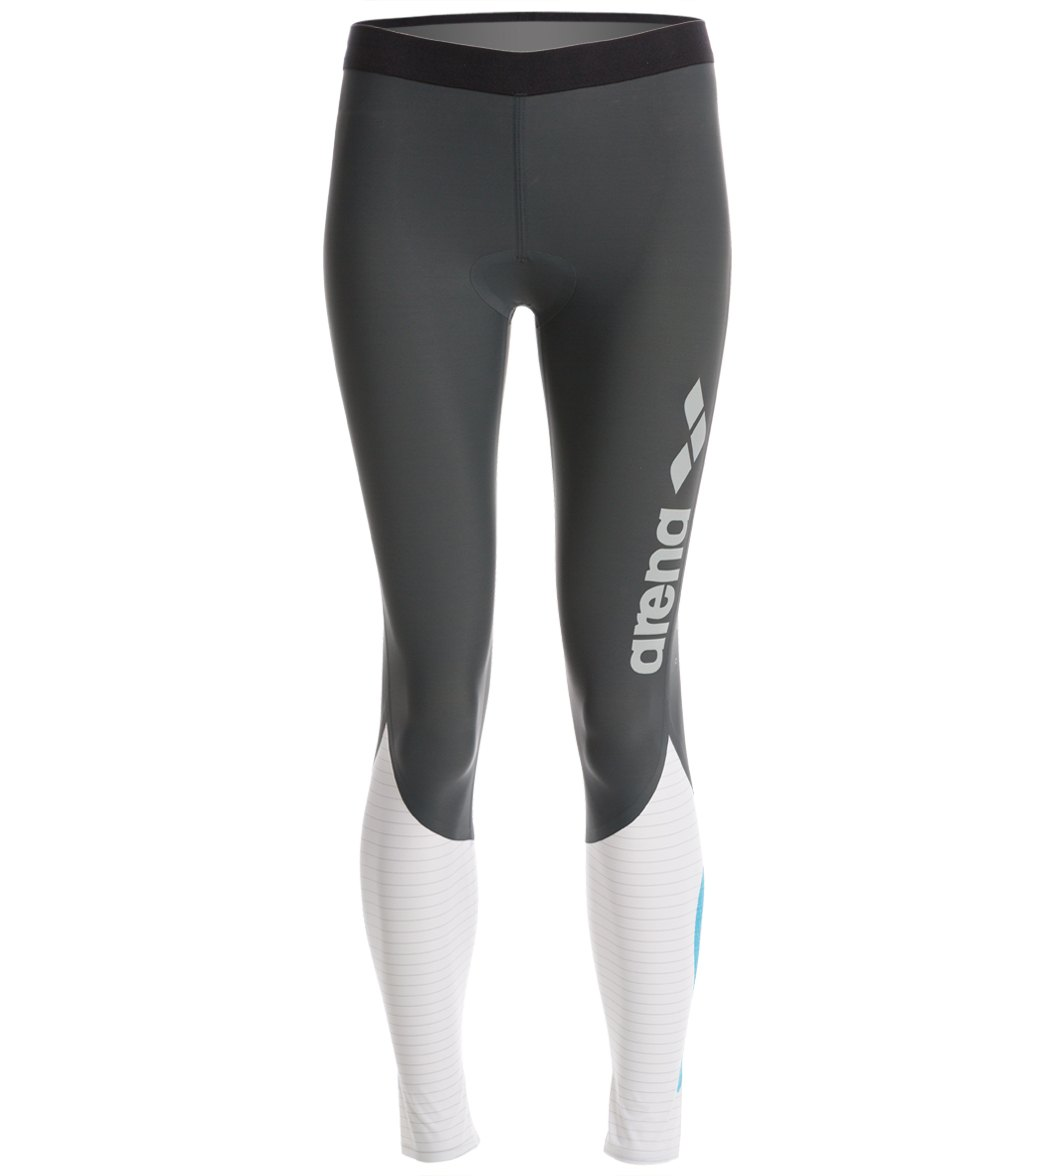 cc2ffb884 Arena Women's Carbon Compression Long Tight at SwimOutlet.com - Free  Shipping